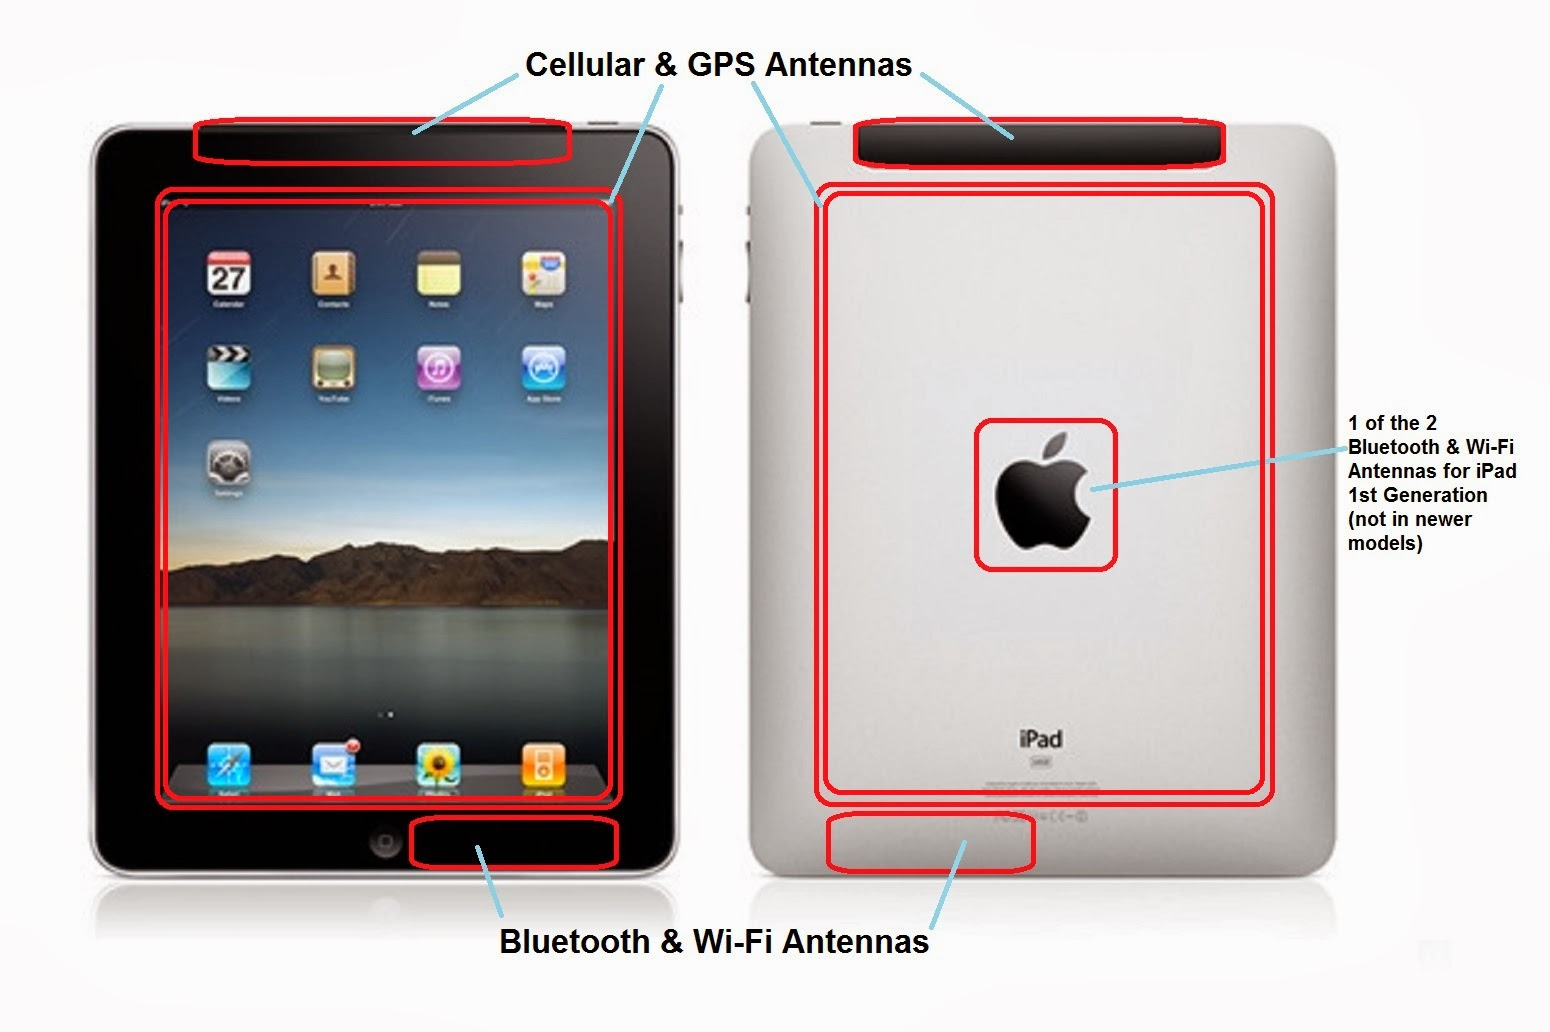 Do You Know Where The Wifi Bluetooth Microwave Antennas Are On Your Child S Ipad